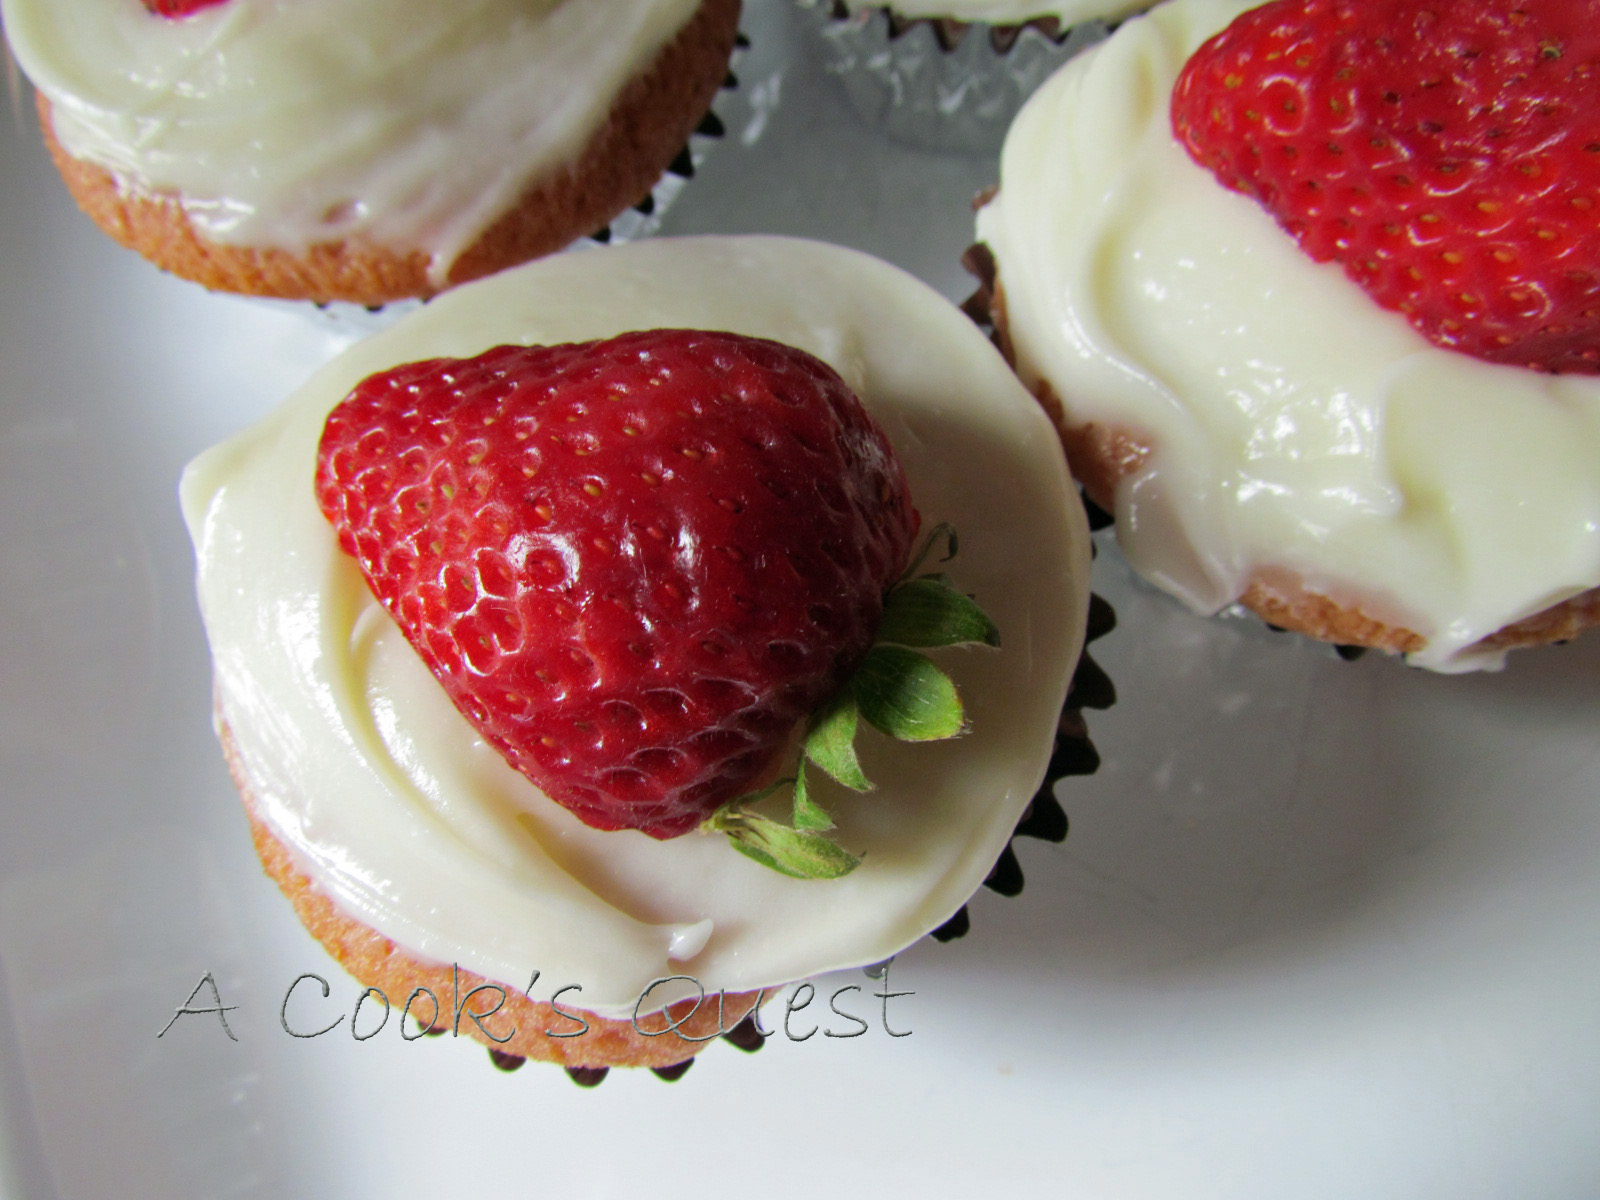 A Cook's Quest: Strawberry Cupcakes with Cream Cheese Frosting